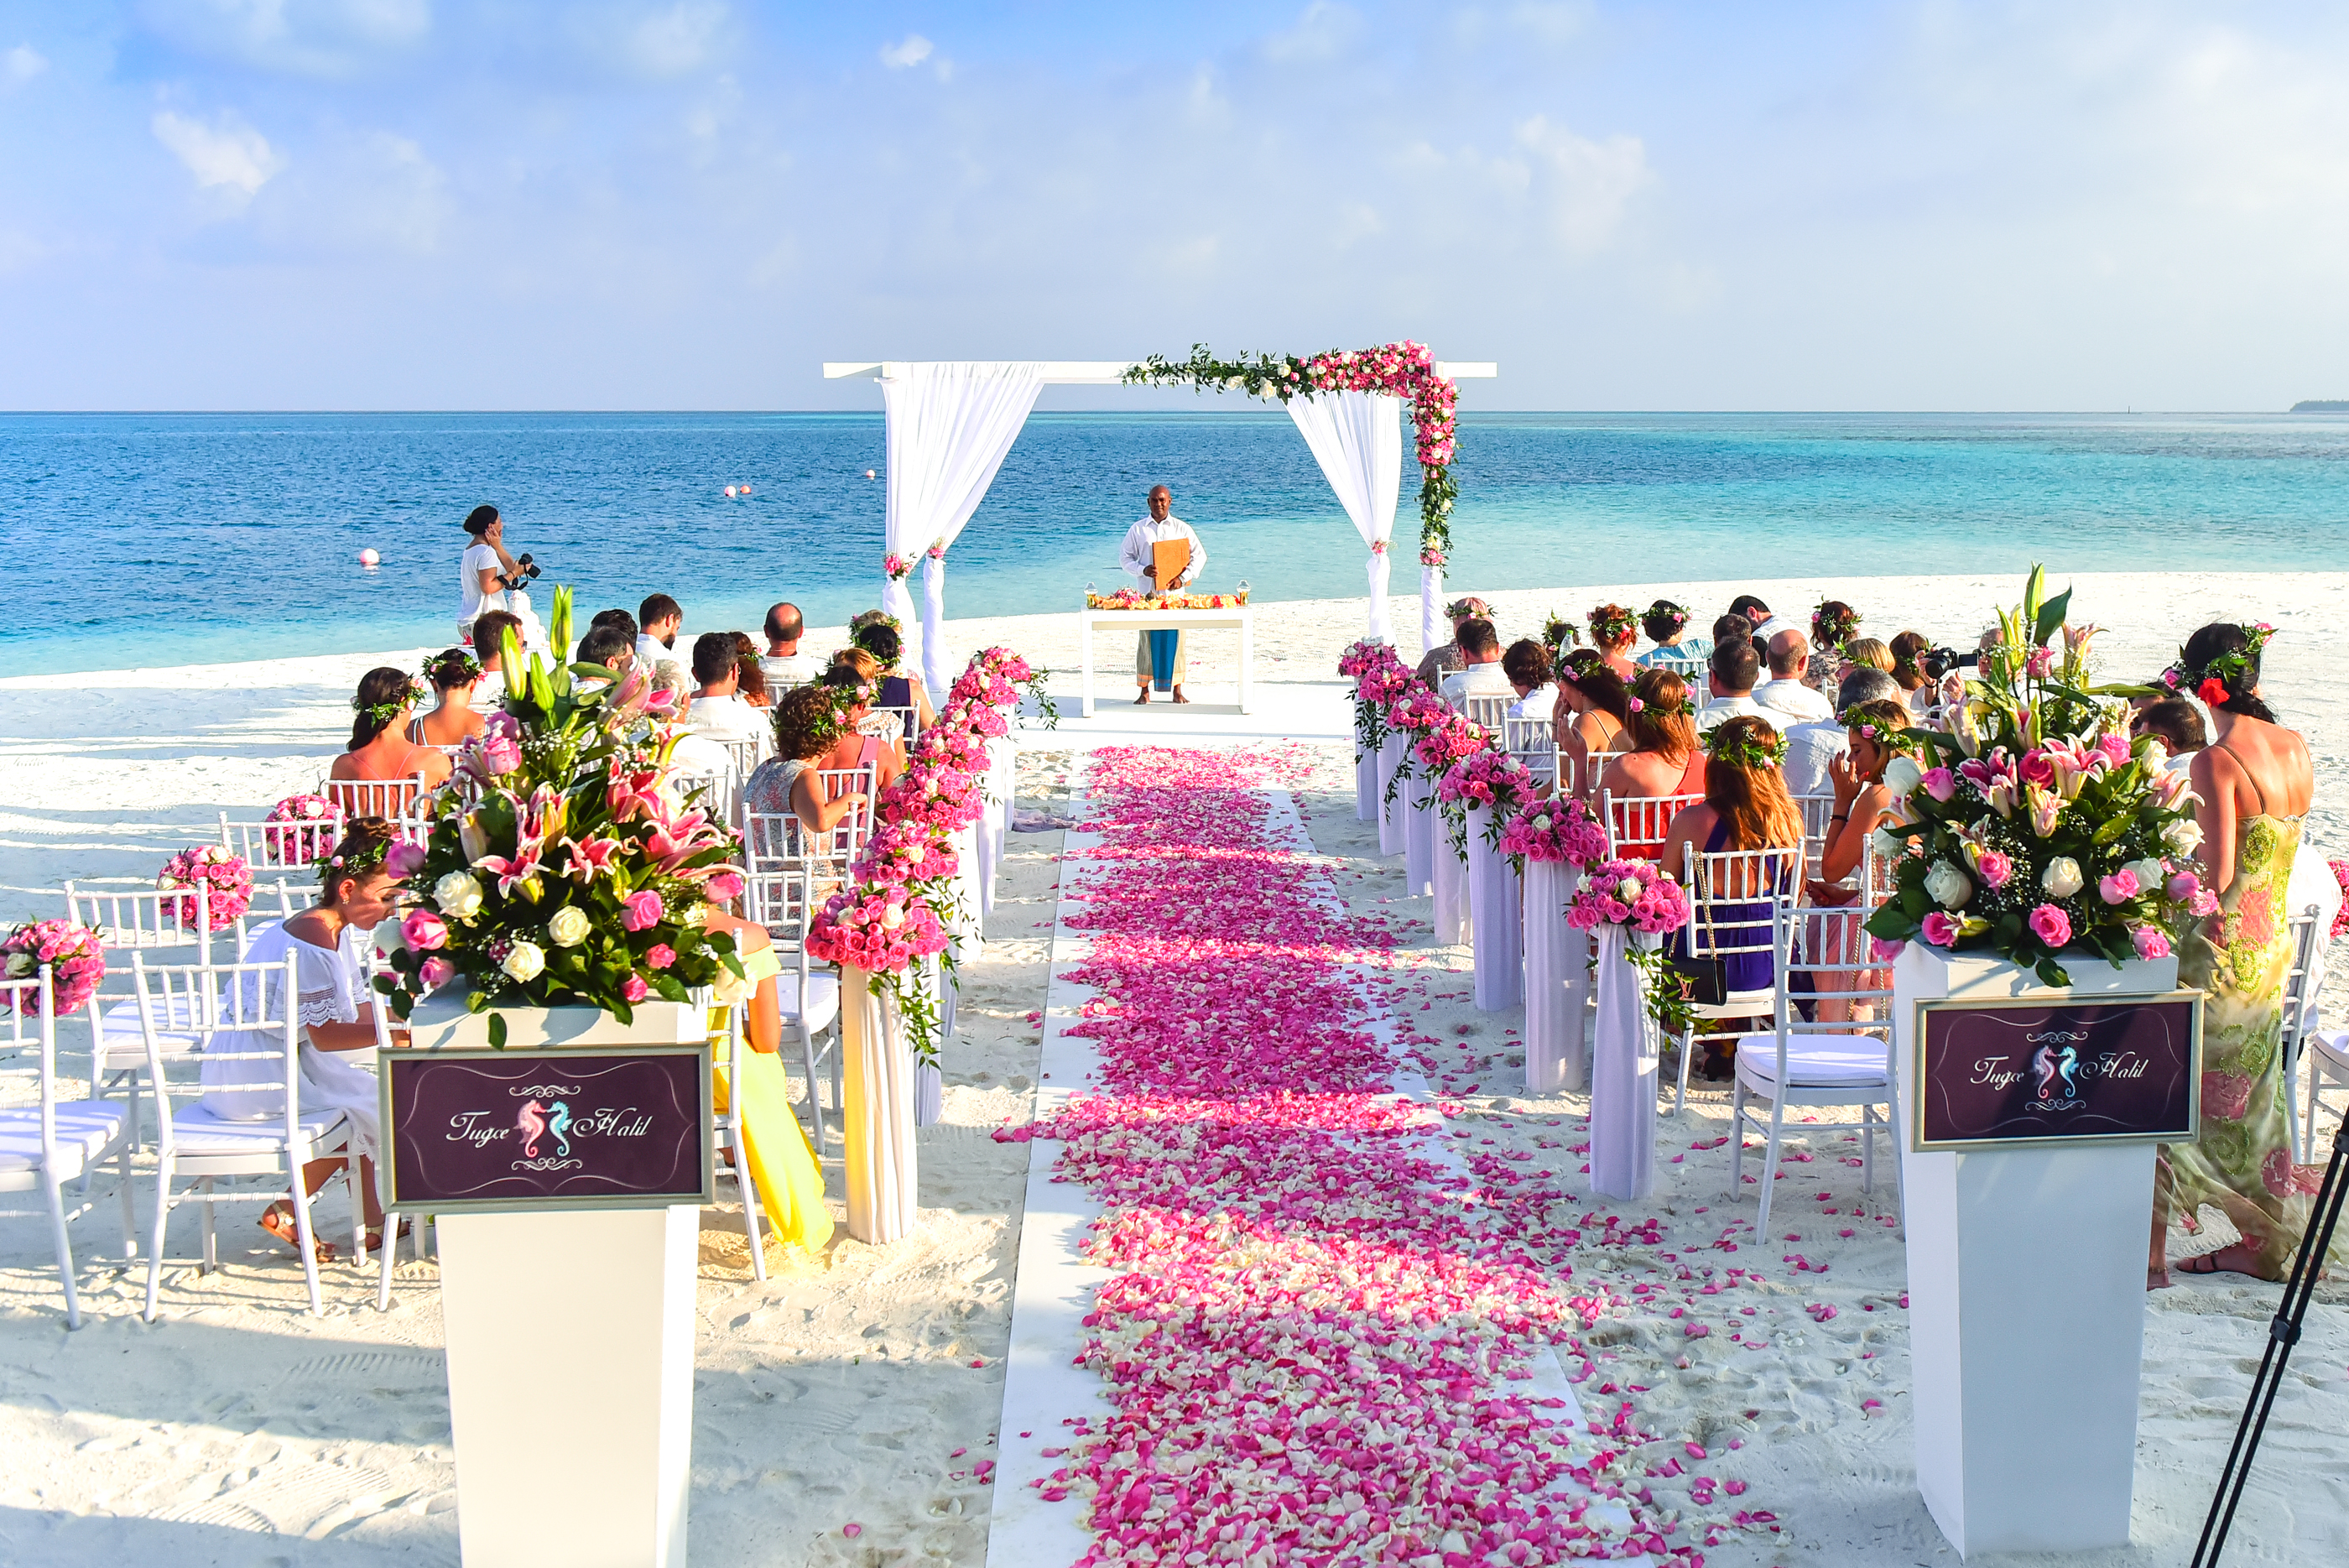 Beach wedding ceremony during daytime free stock photo free download junglespirit